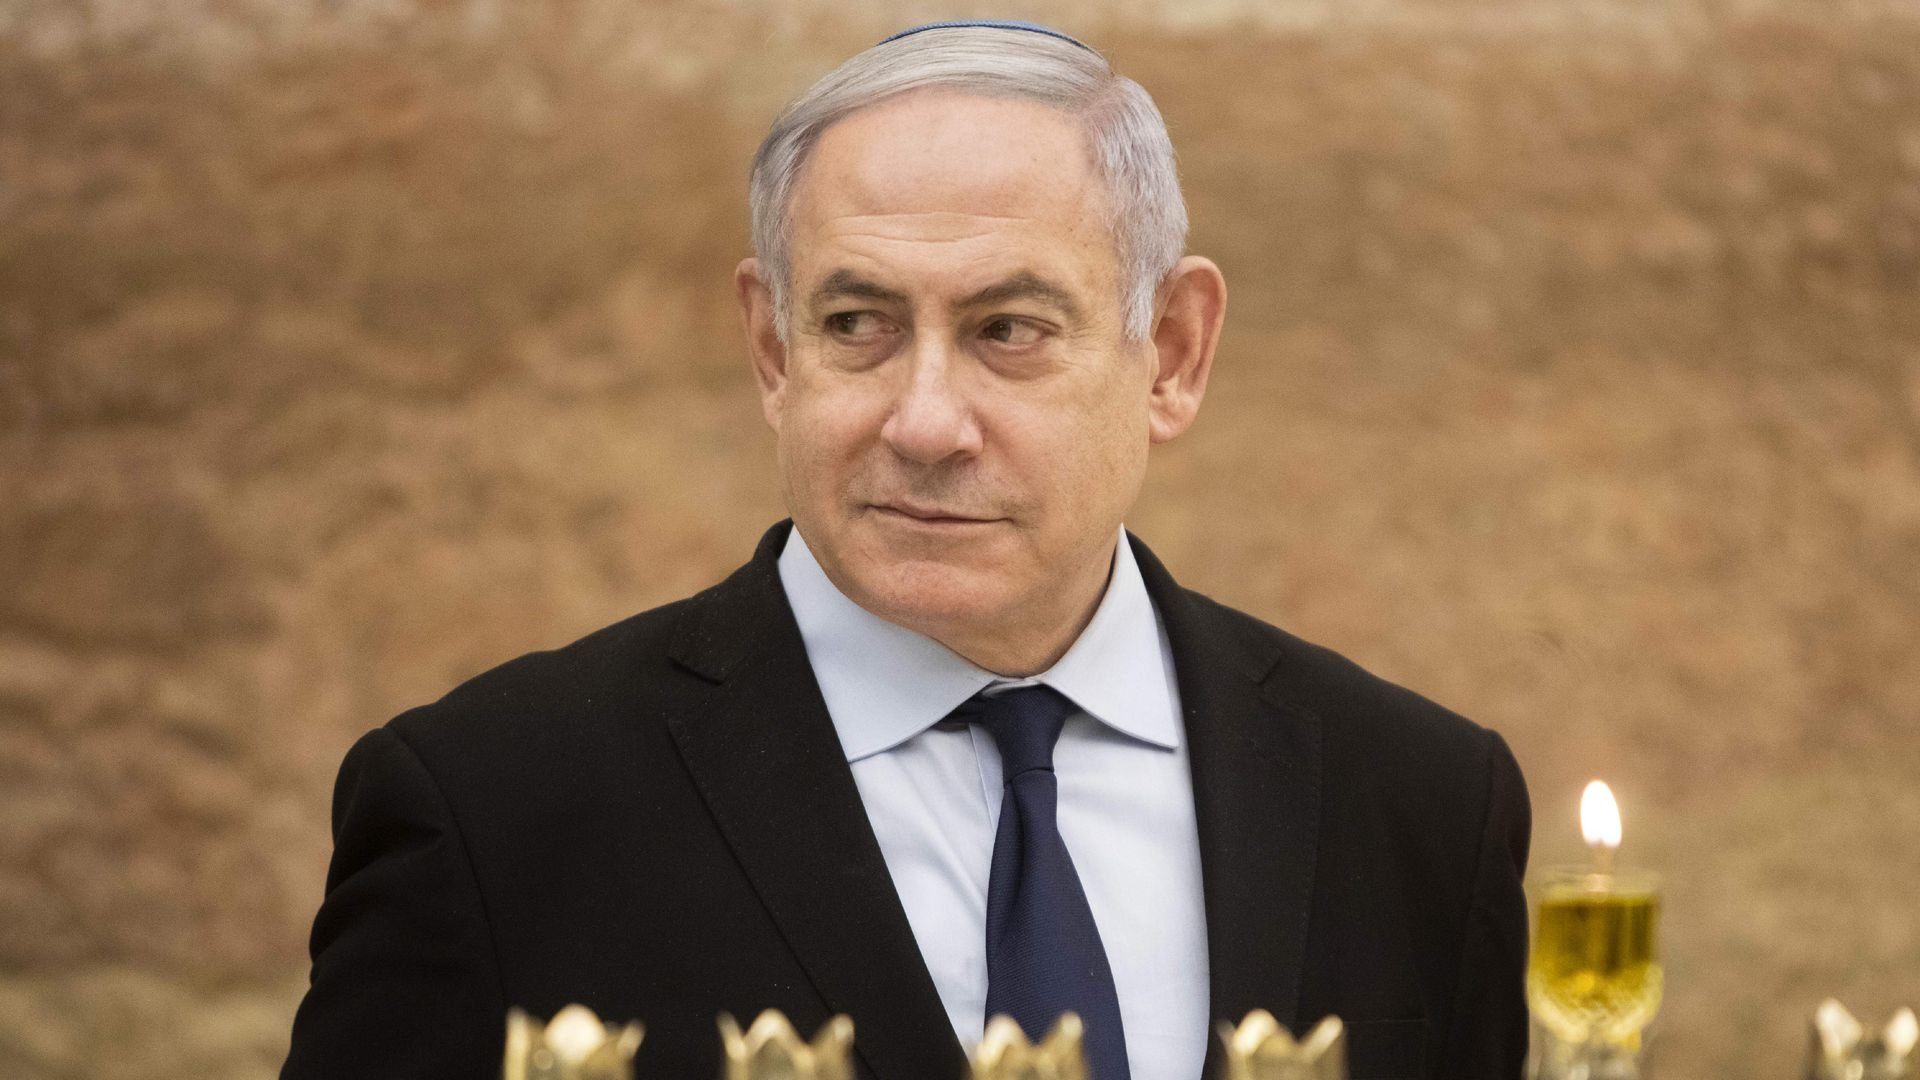 Israeli Prime Minister Benjamin Netanyahu looks on after lighting a Hanukkah candle at the Western Wall, Judaism's holiest prayer site, in the Old City of Jerusalem on December 22